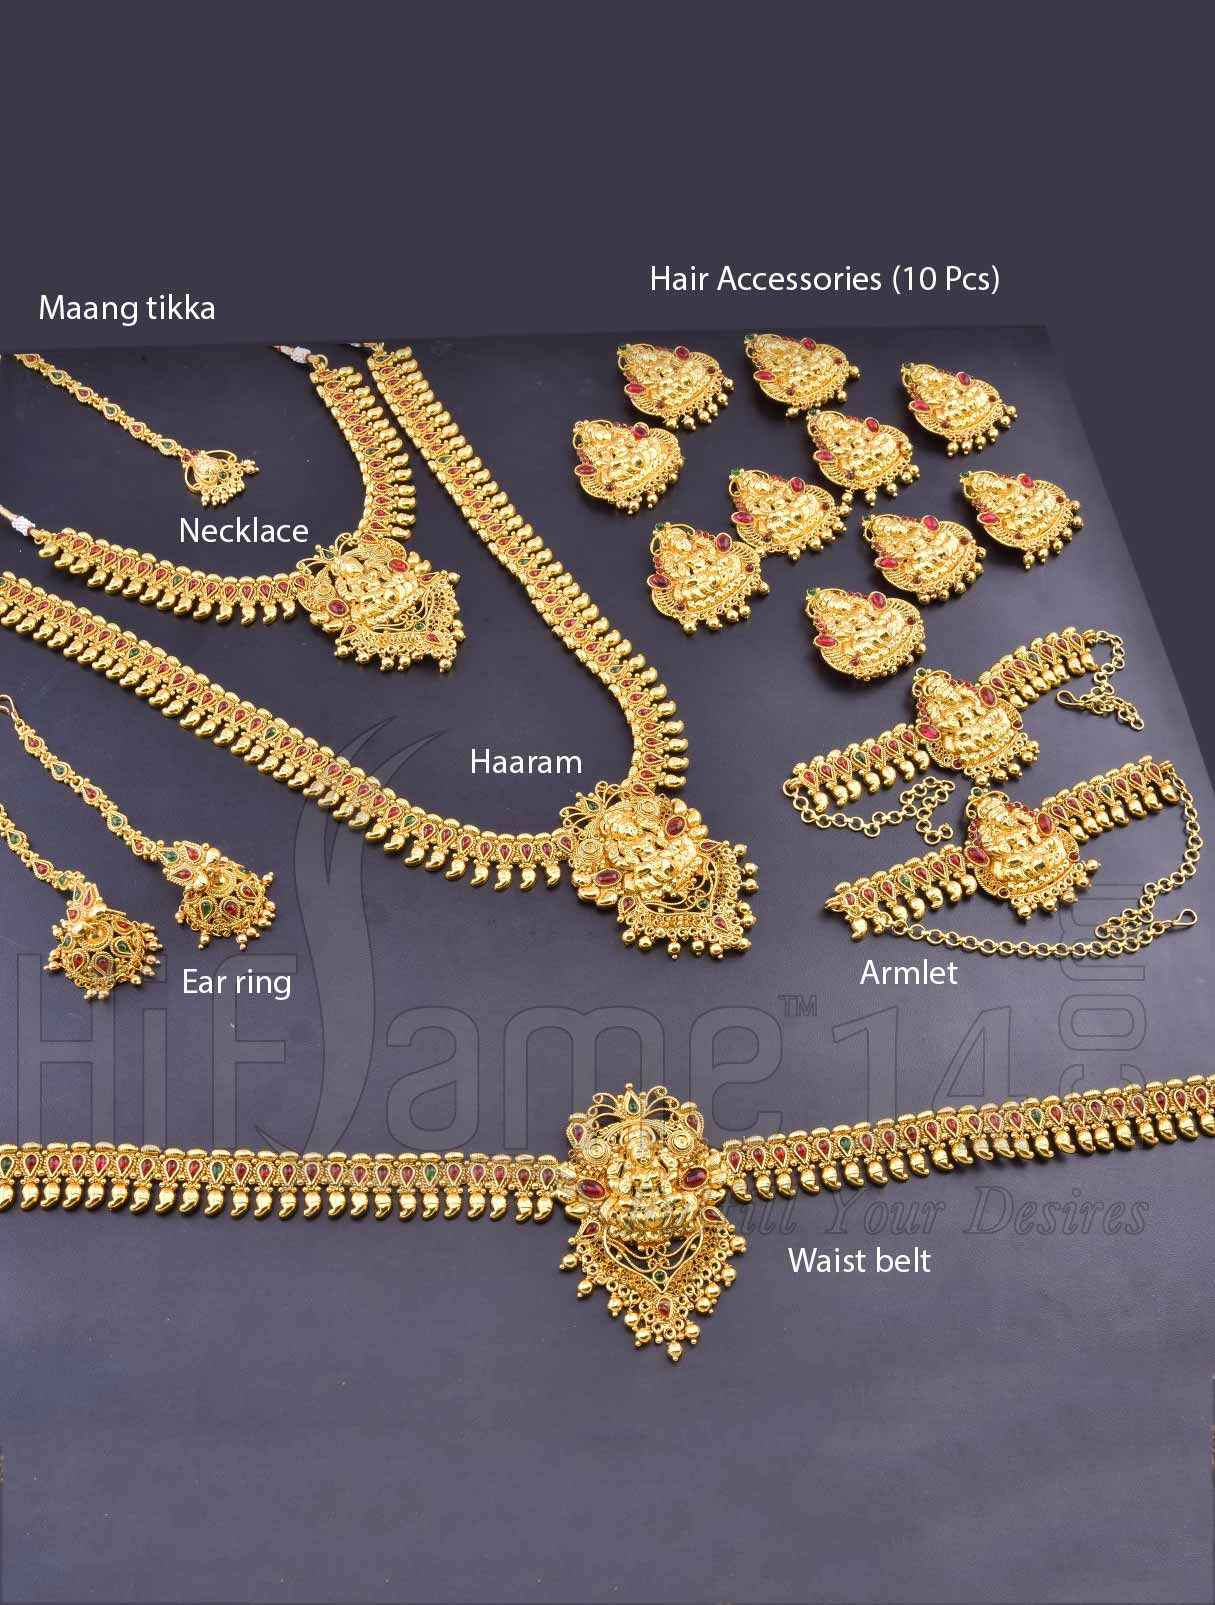 Rent Marriage Bridal Mahalakshmi Jewellery Set Online Free Delivery And Pickup Jewelry Design Earrings Bridal Jewelry Jewelry